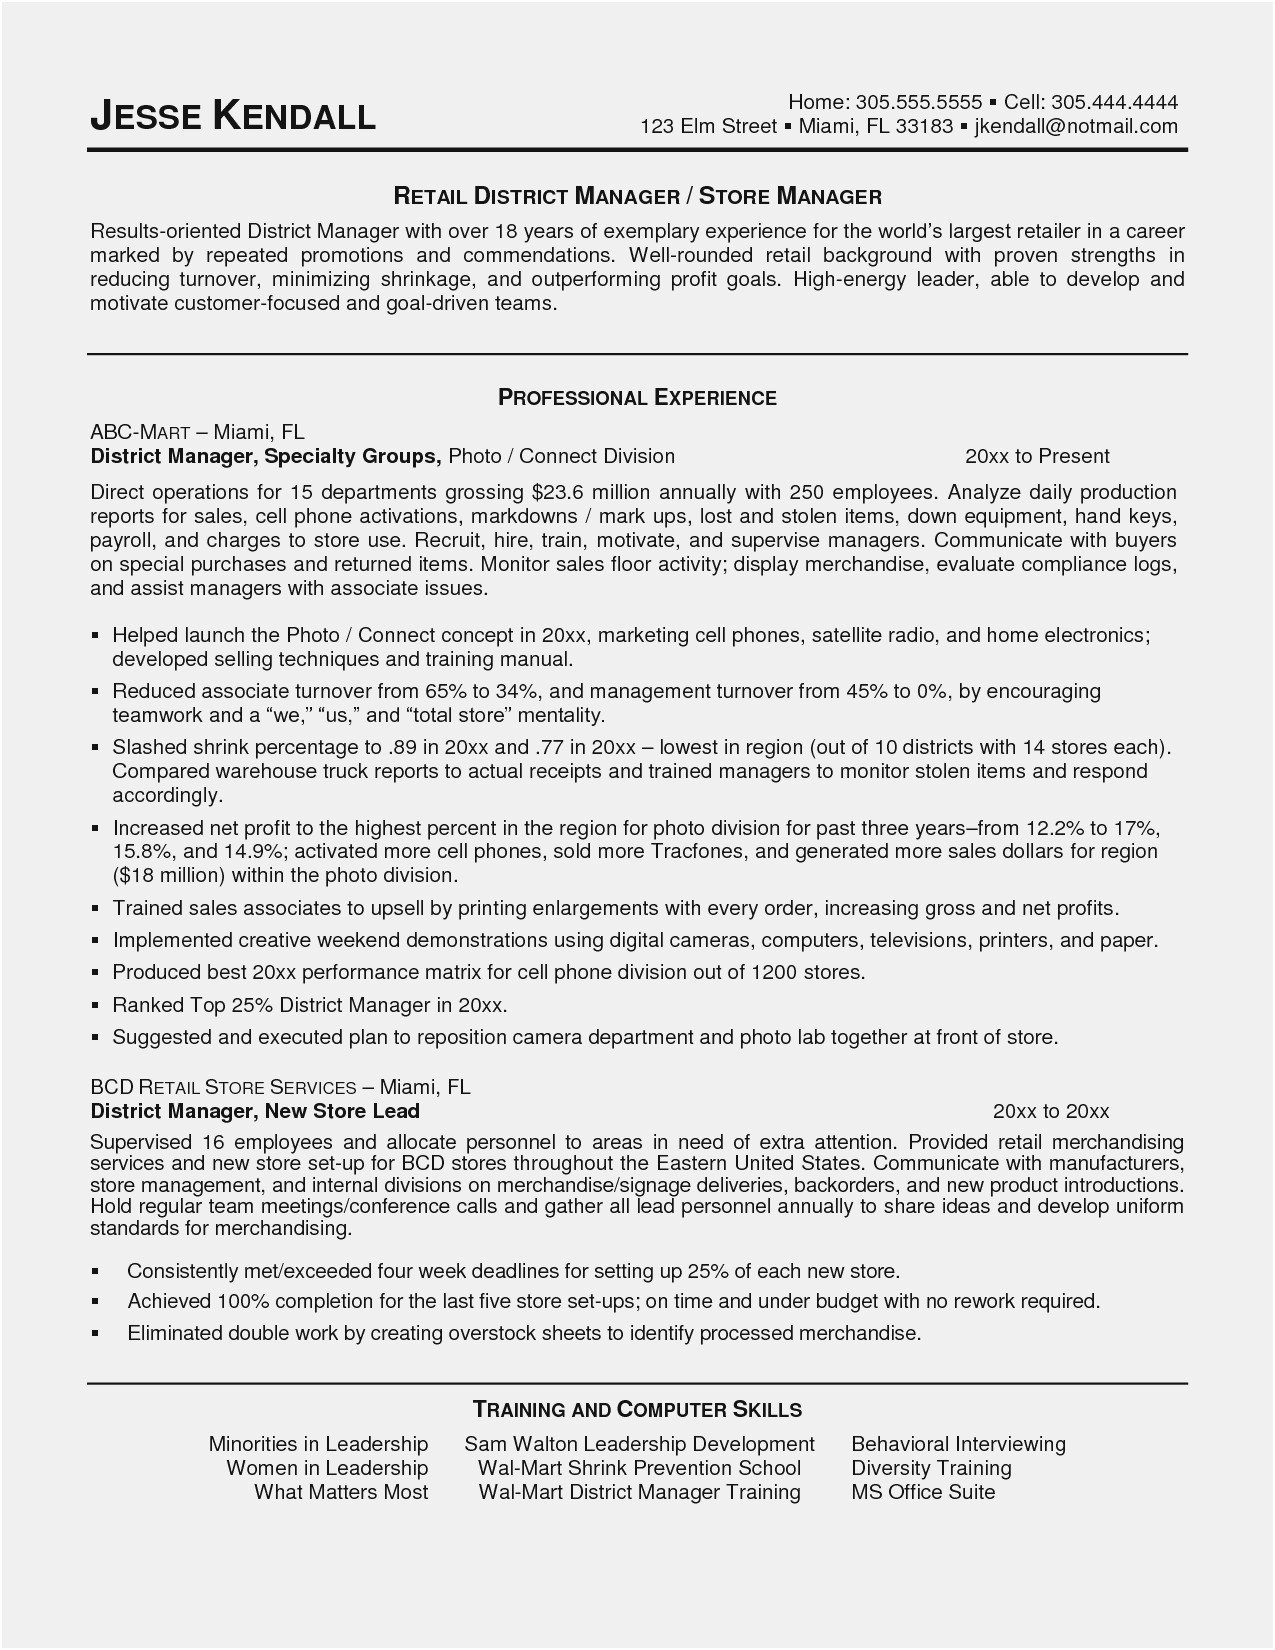 Resume without Work Experience - Resume for No Work Experience Inspirational How to Write A Resume